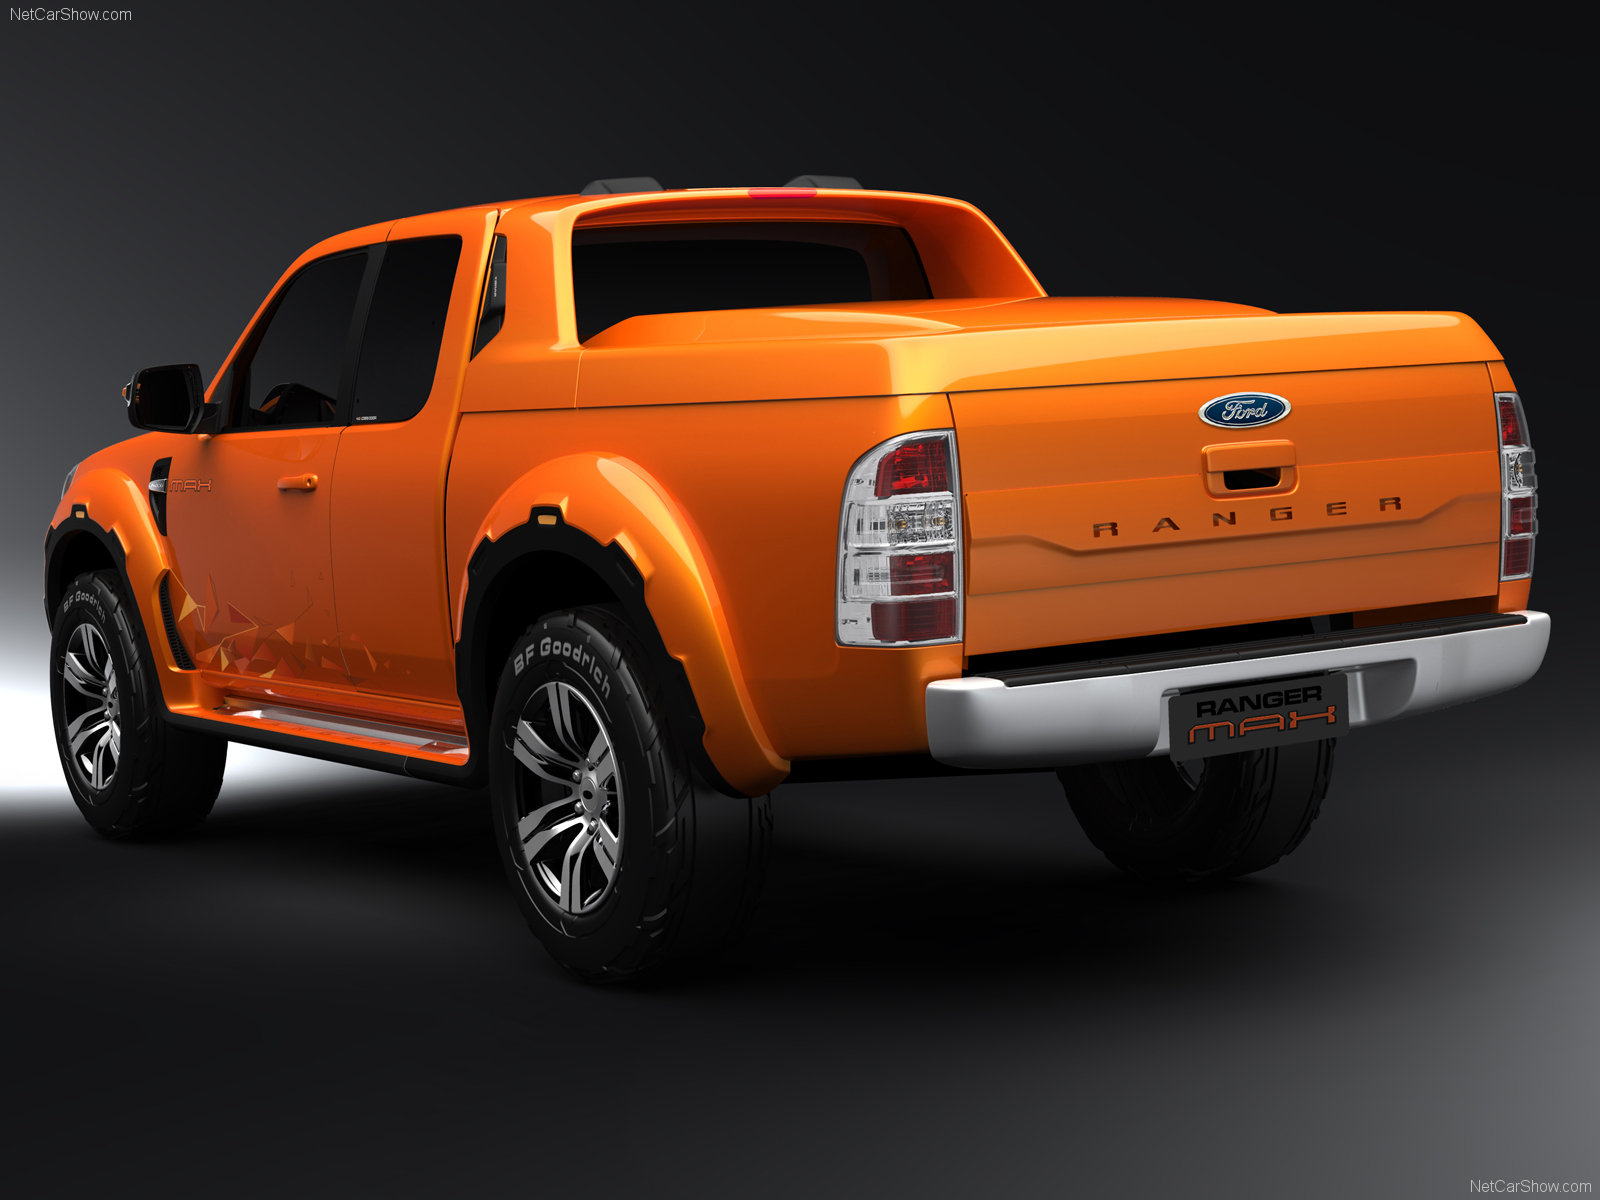 Ford Ranger Max Concept photo 59891